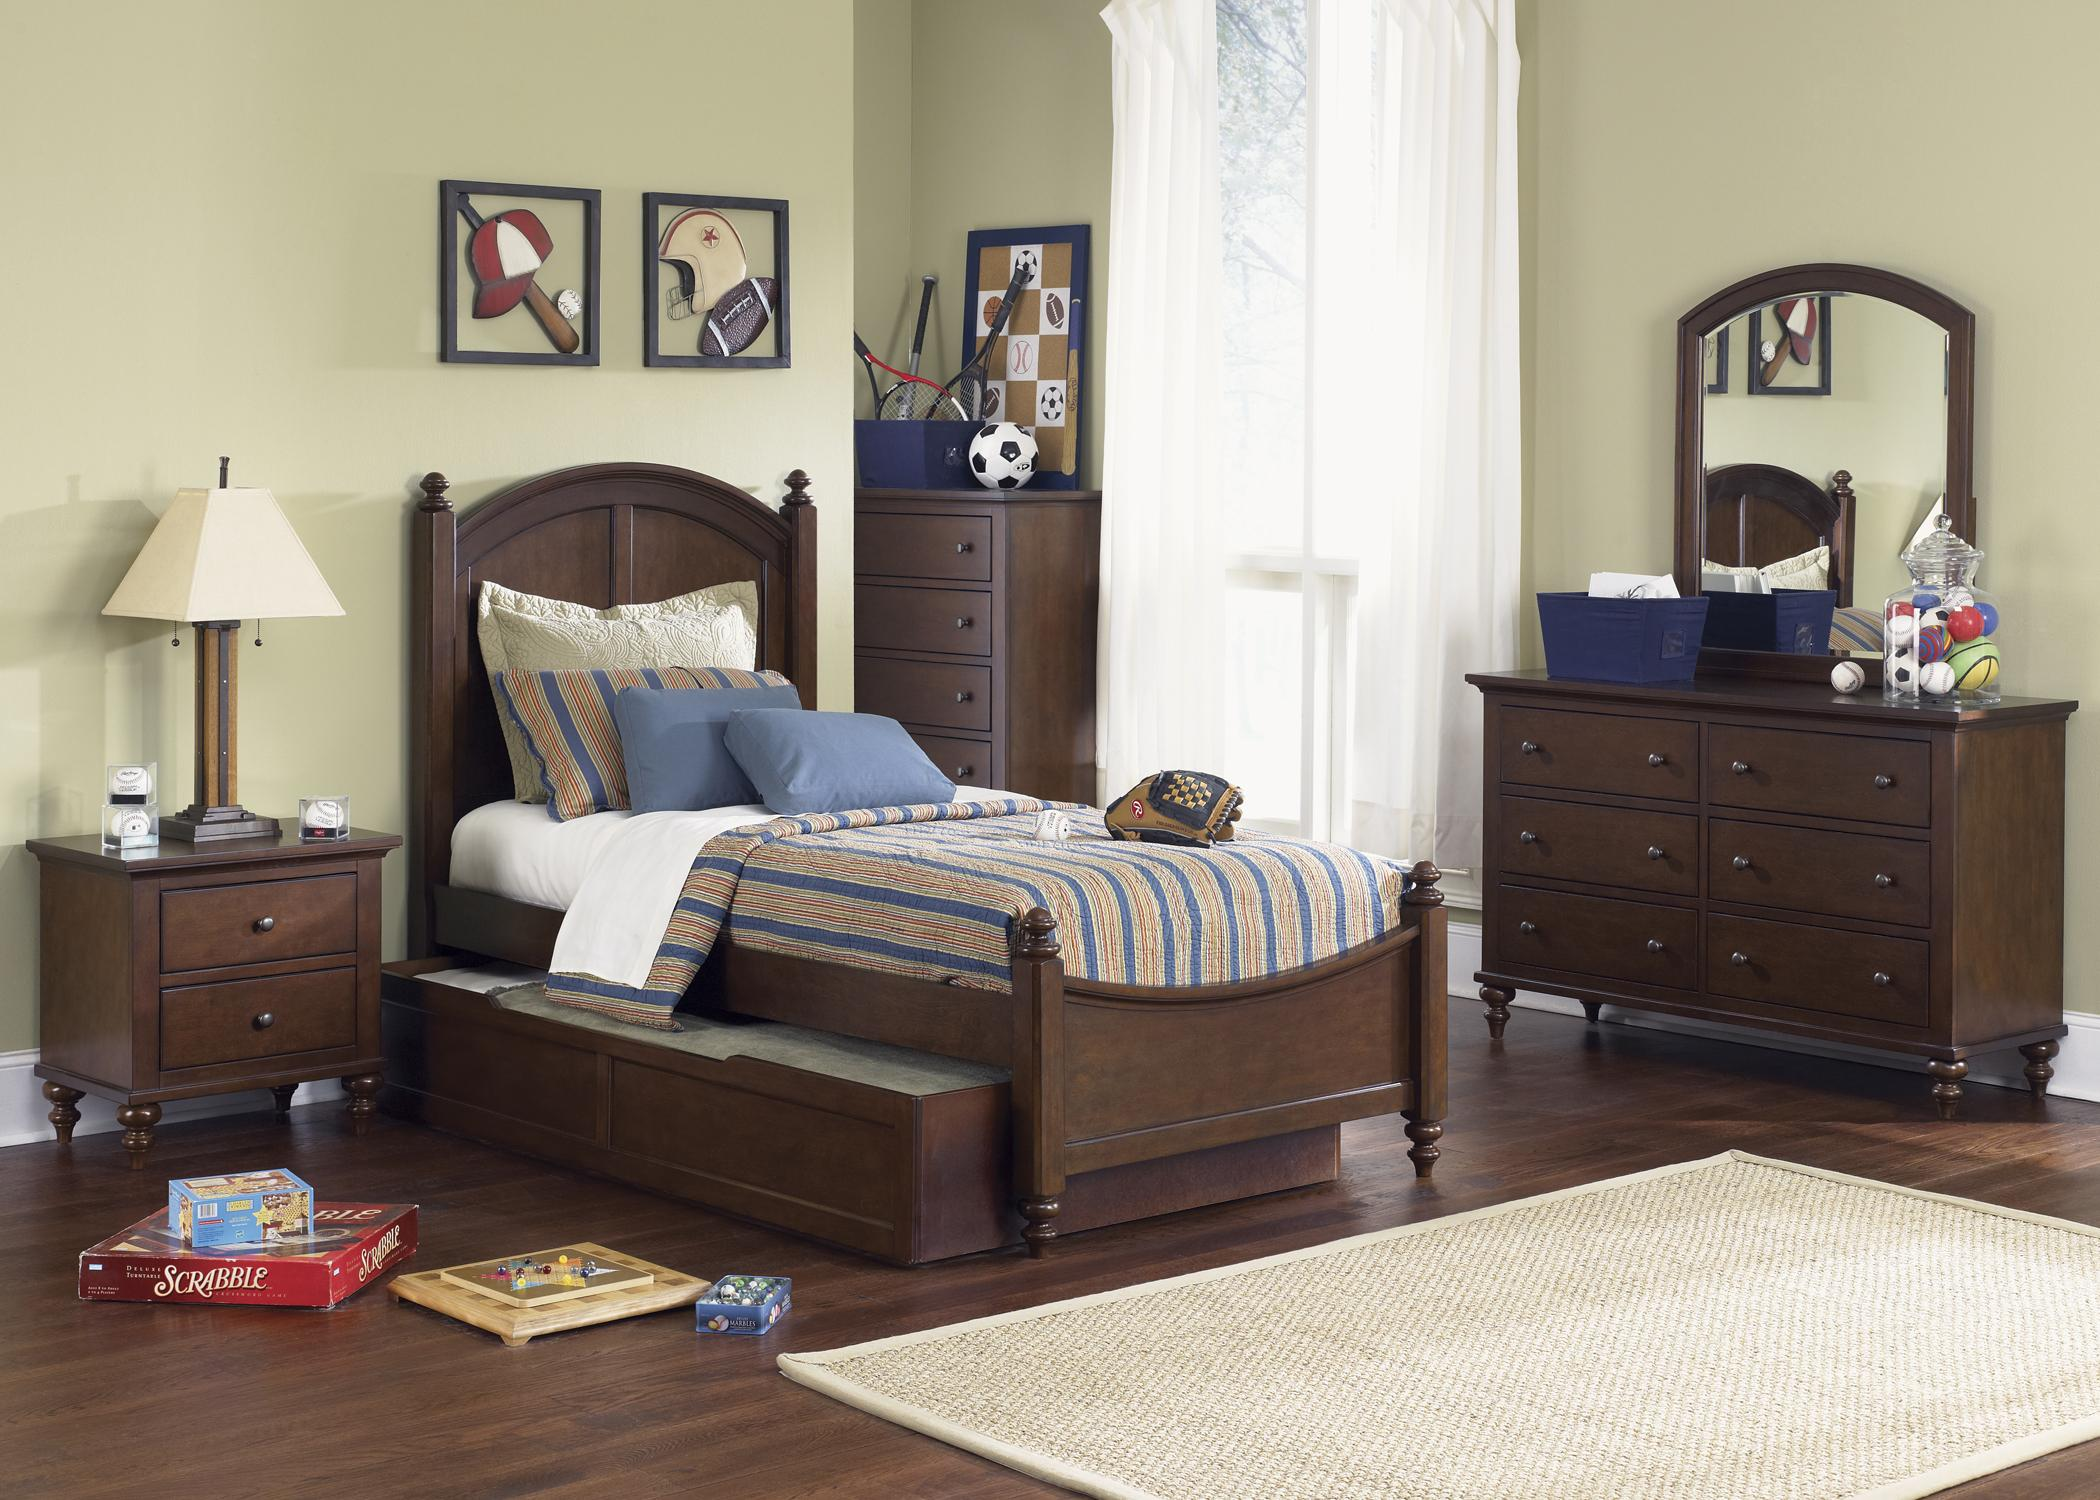 Modern Furniture Harrisburg Pa exellent bedroom furniture harrisburg pa e intended ideas